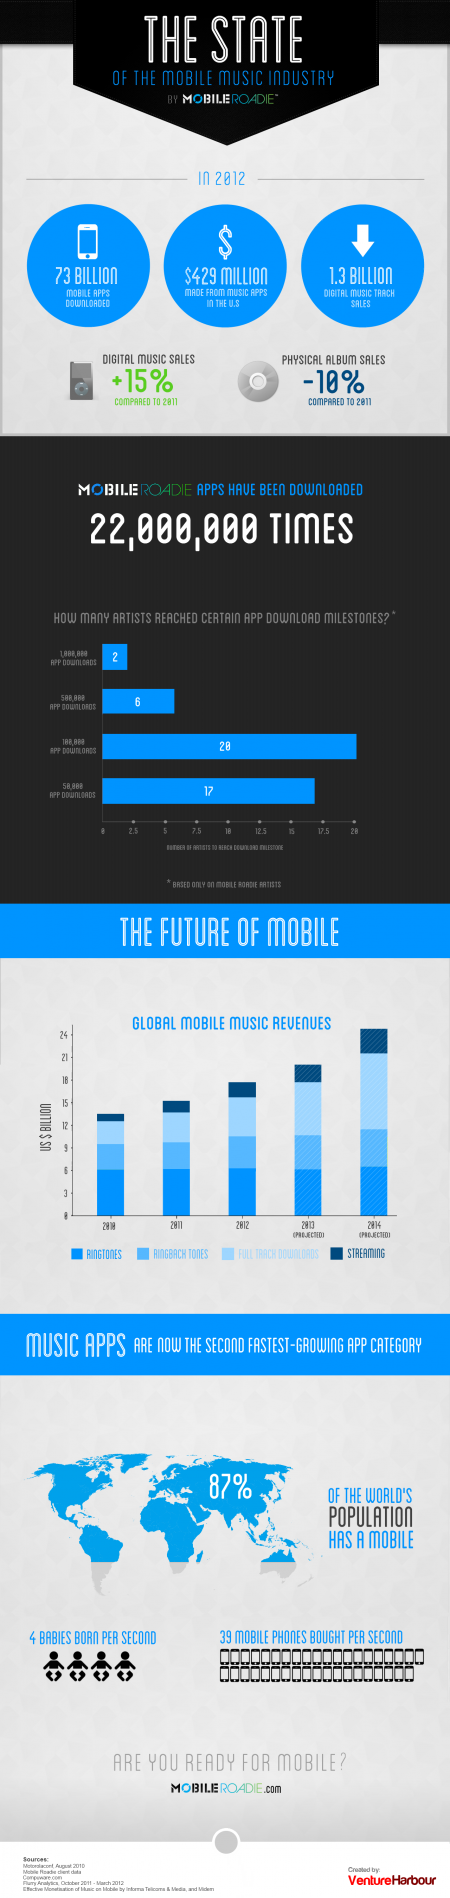 State-of-mobile-music-infographic